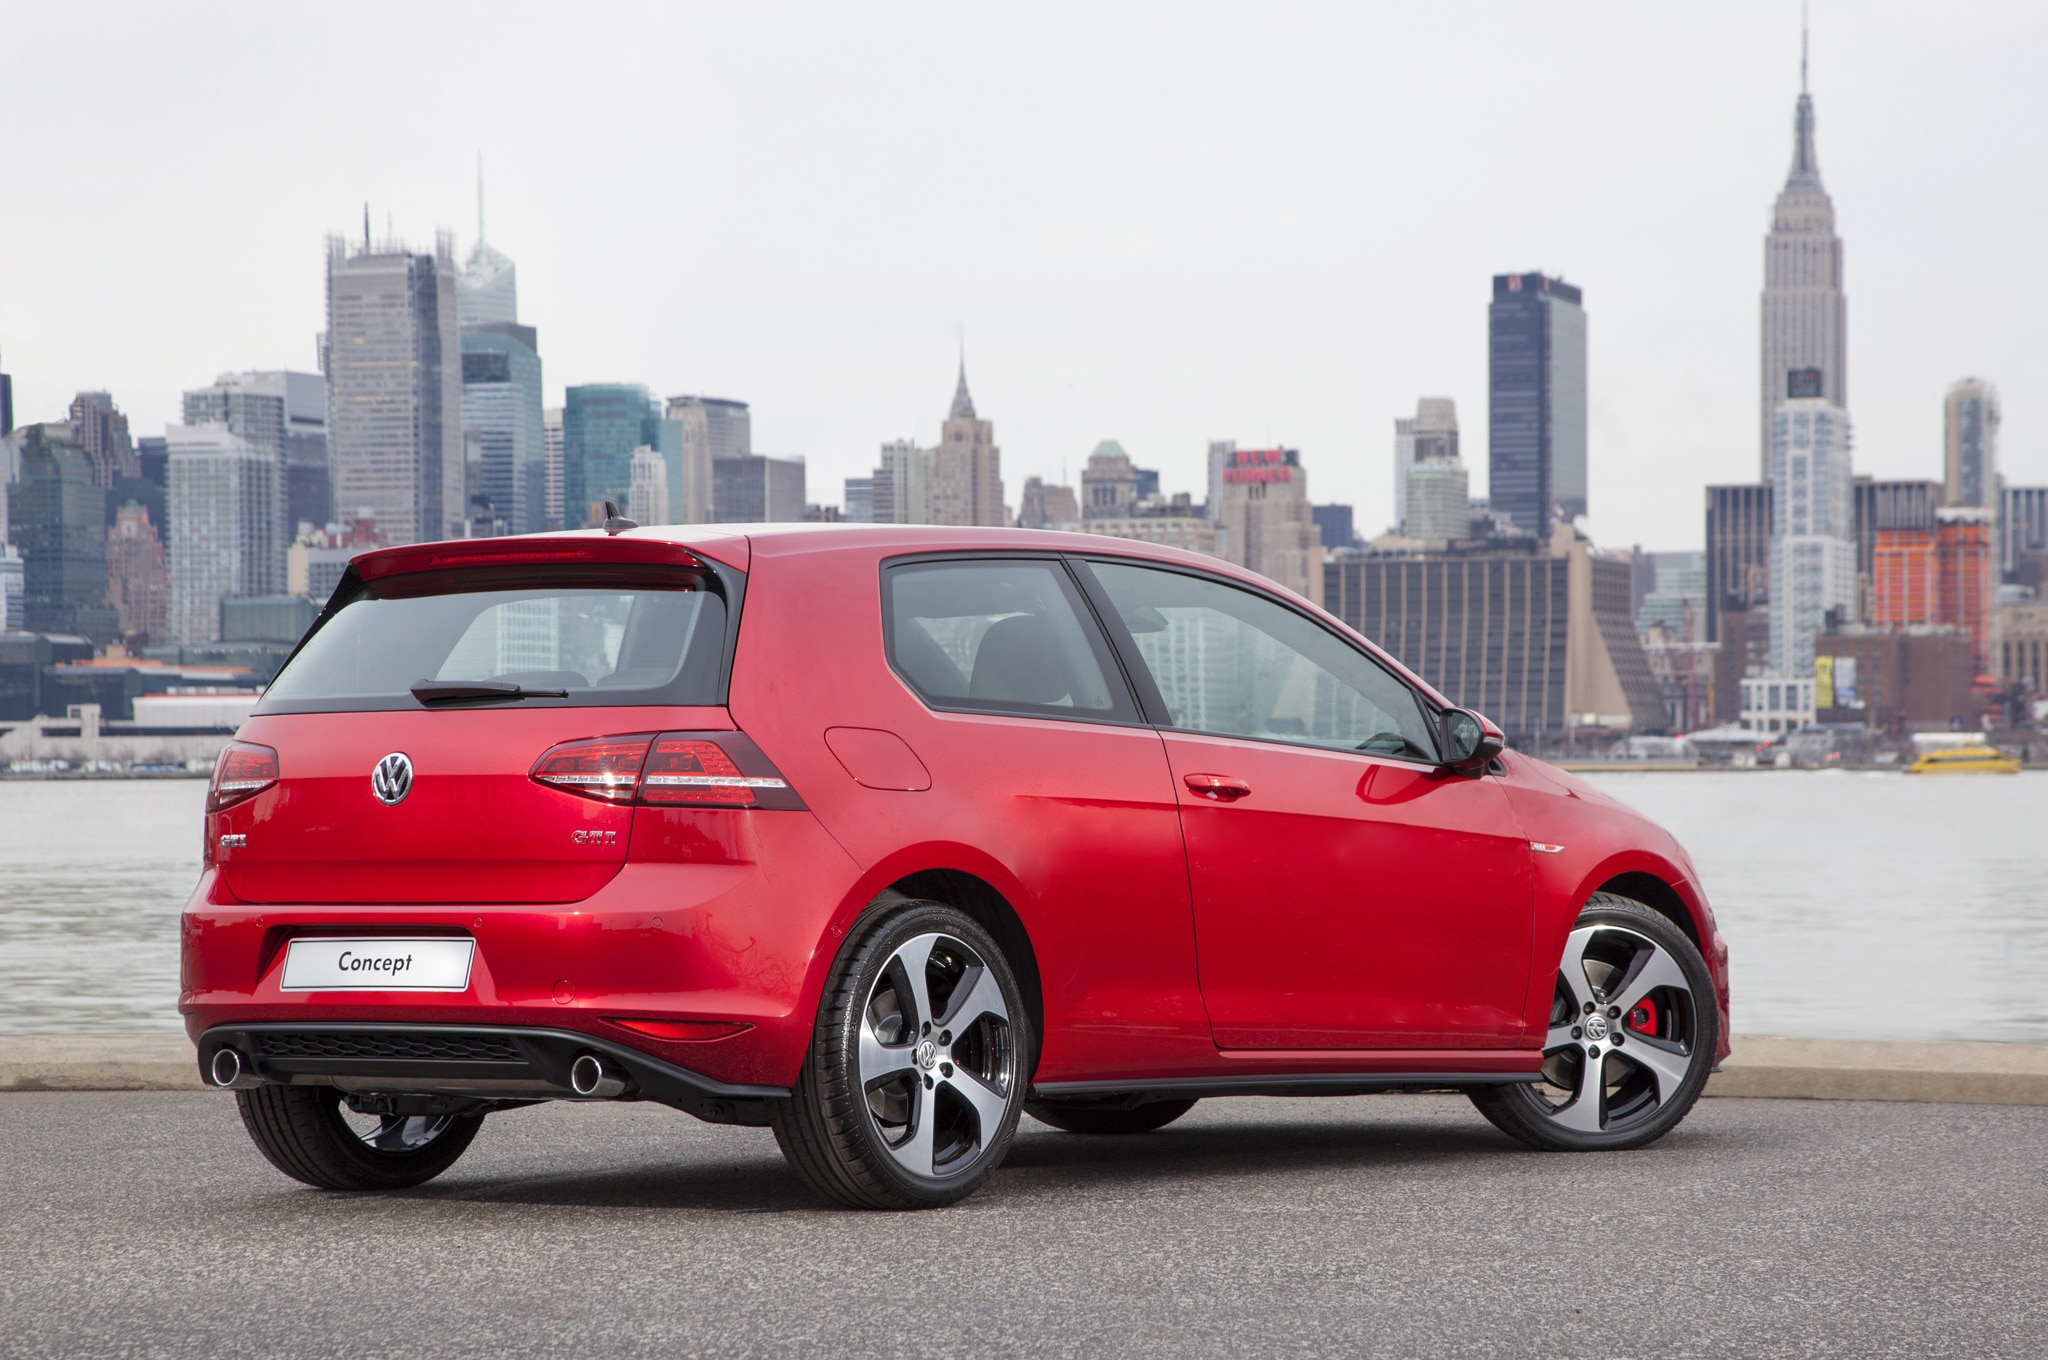 2015 Volkswagen Golf Gti Rear Angle